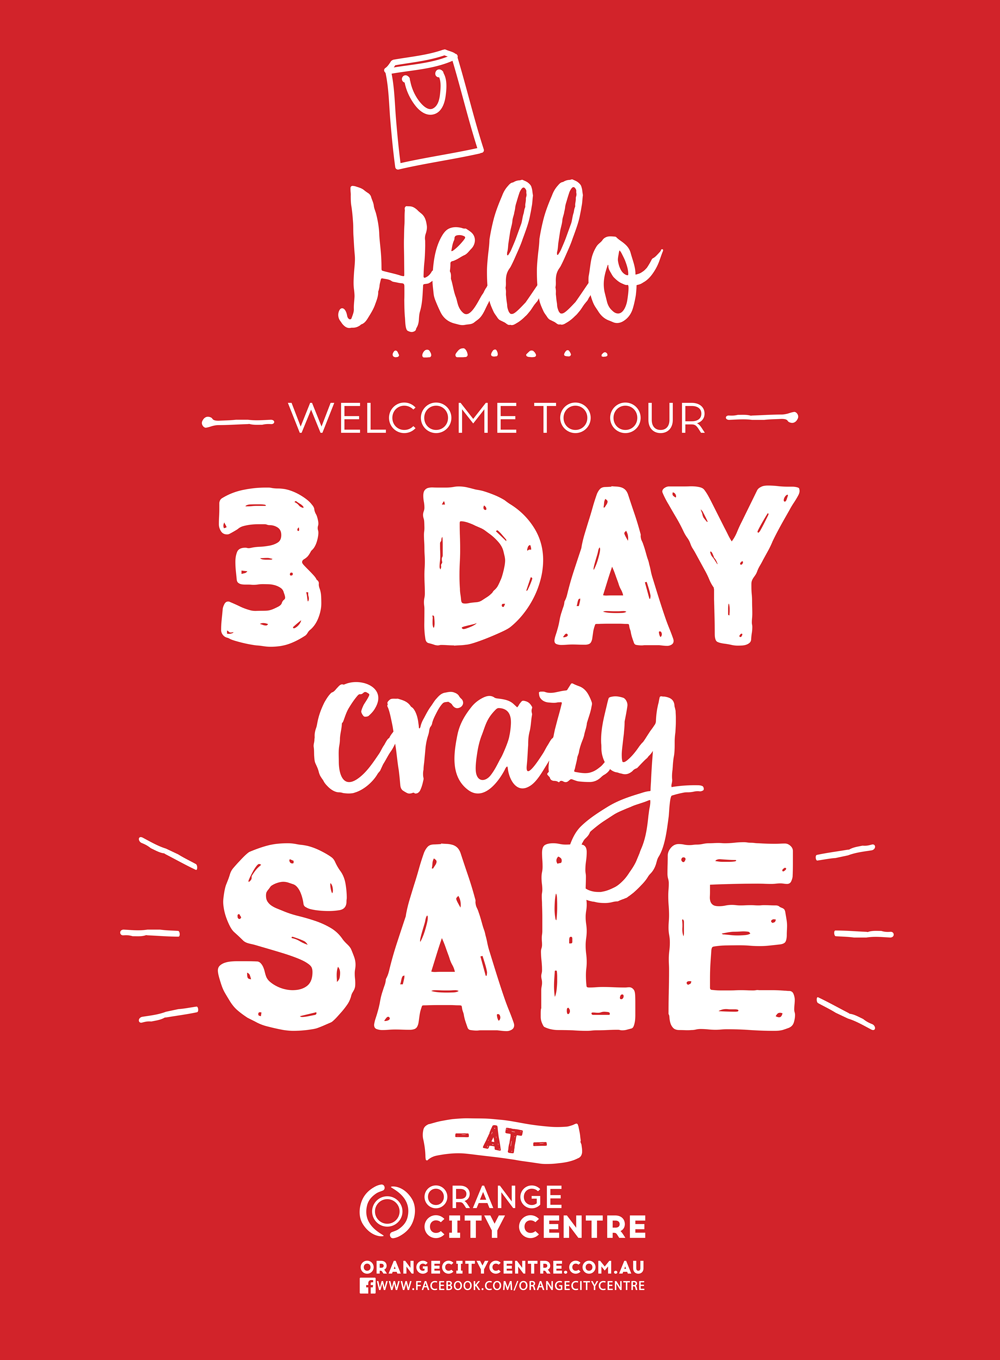 Our 3-Day CRAZY Sale is here!